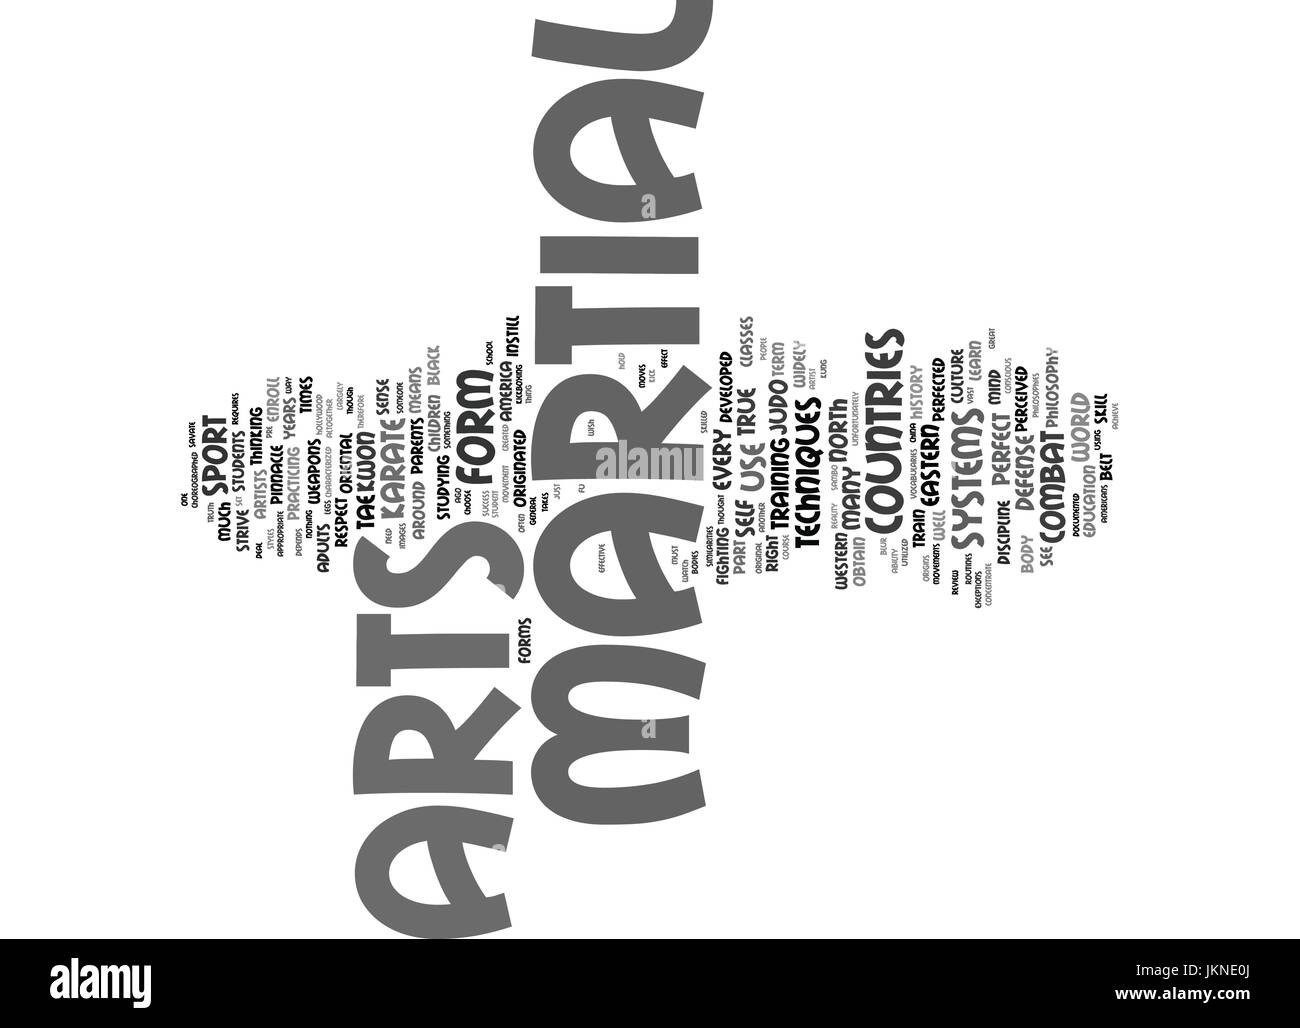 MARTIAL ARTS Text Background Word Cloud Concept - Stock Image